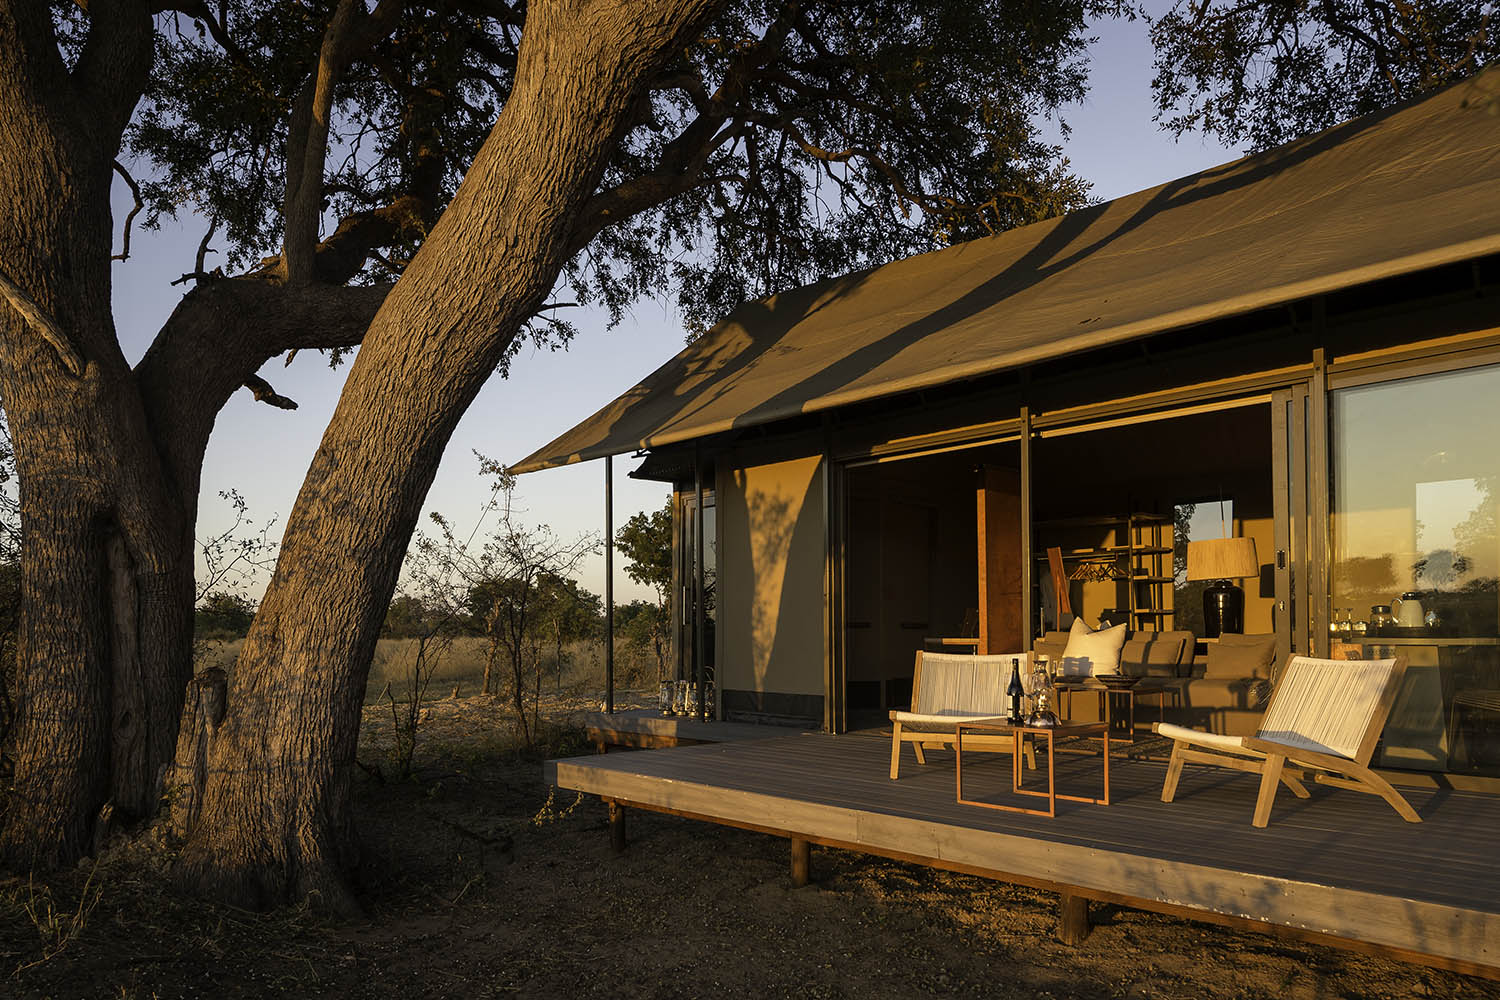 linkwasha camp hwange-national-park-zimbabwe-lodges-luxury-accommodation-deck